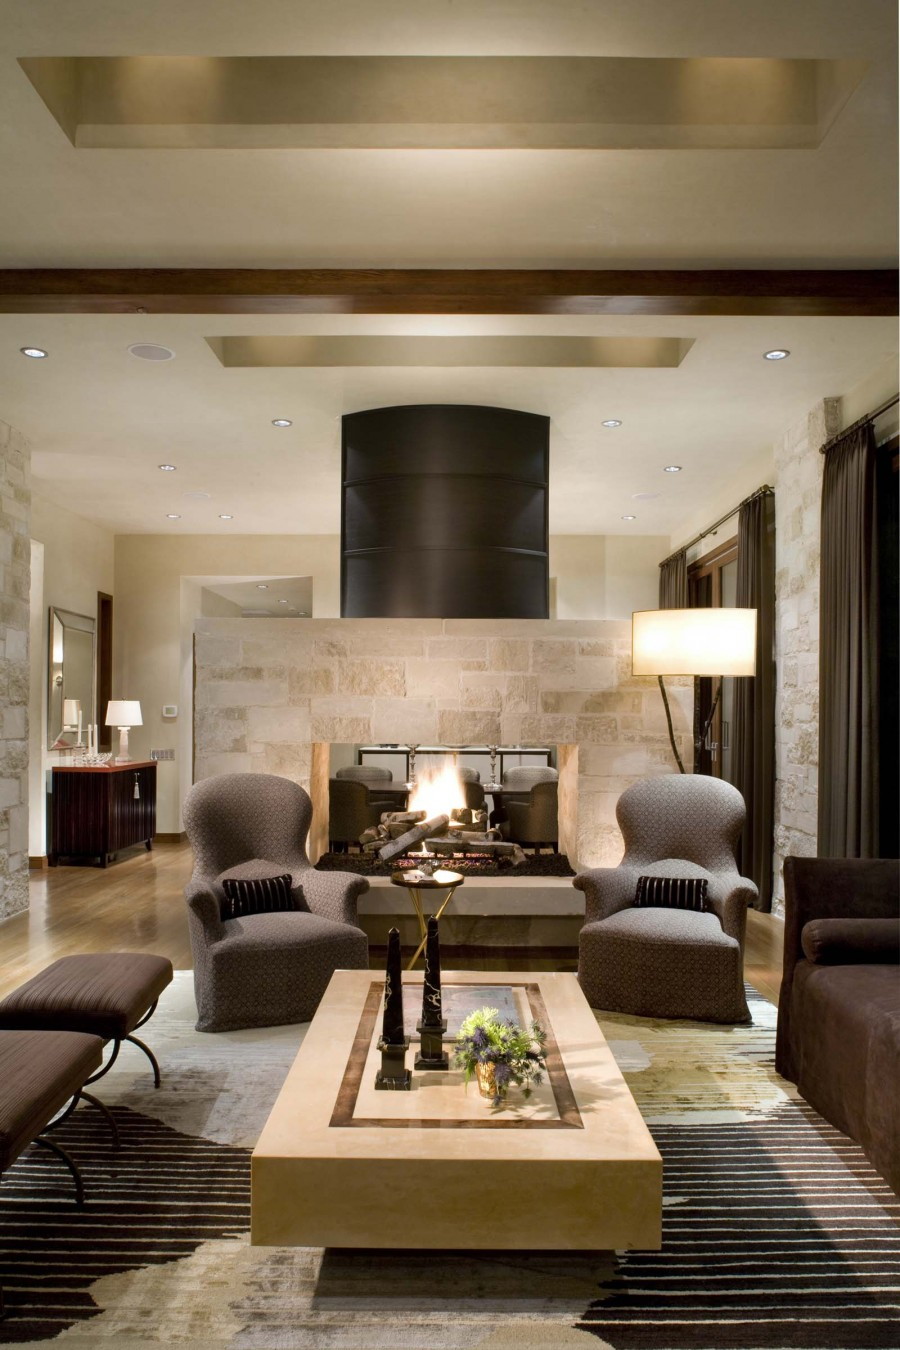 16 fabulous earth tones living room designs decoholic for Sitting room interior design